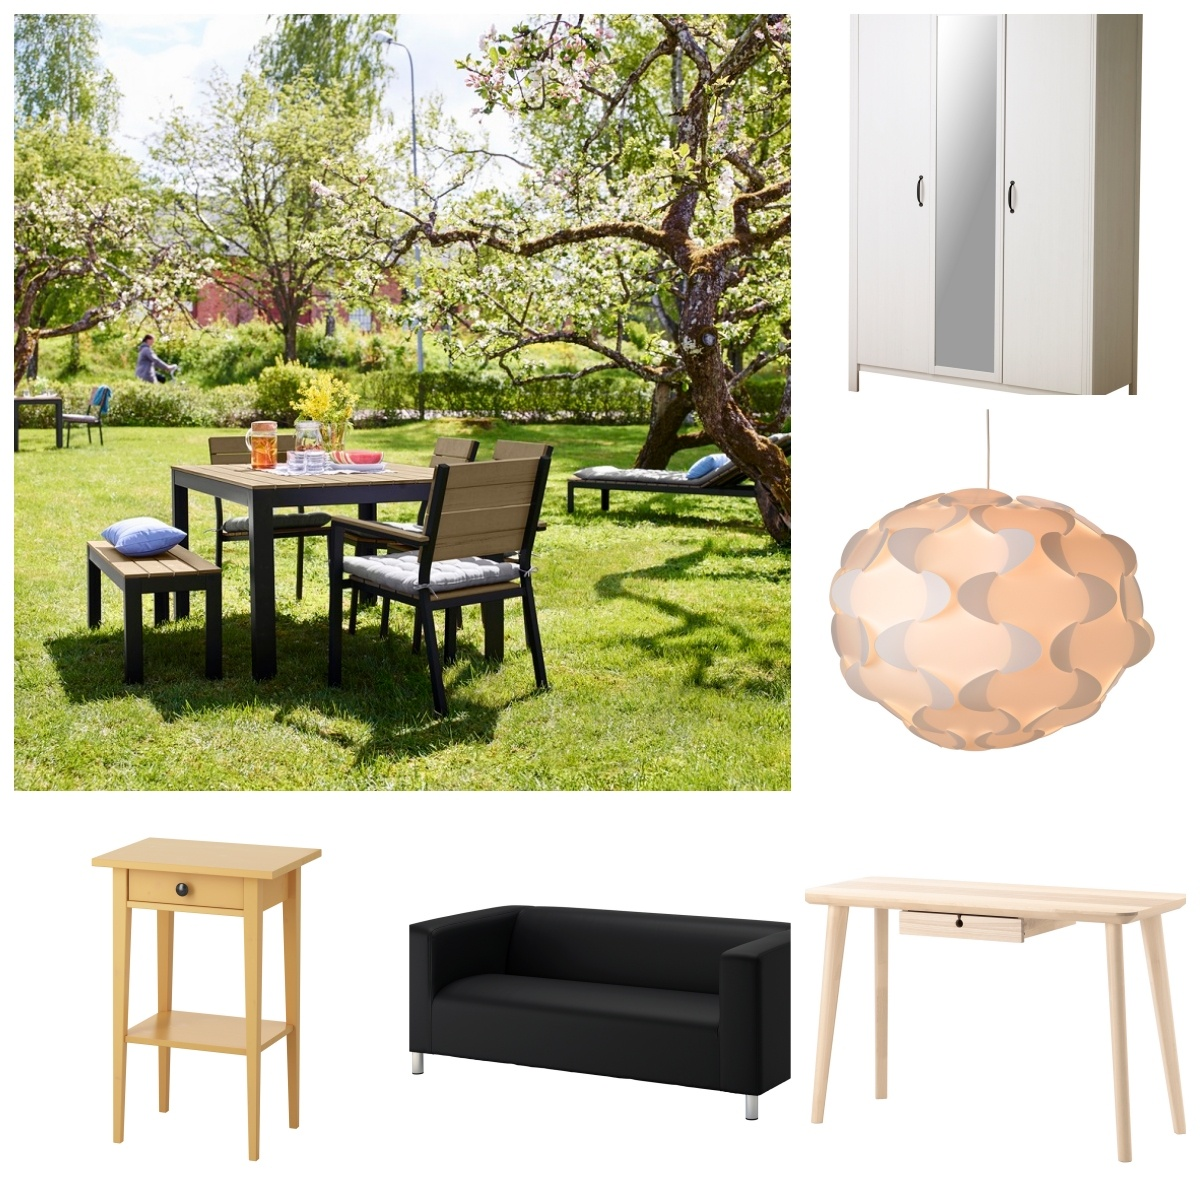 Ikea Kitchen Sales 2017 Ikea Sale 2017 Ikea Year End Sale